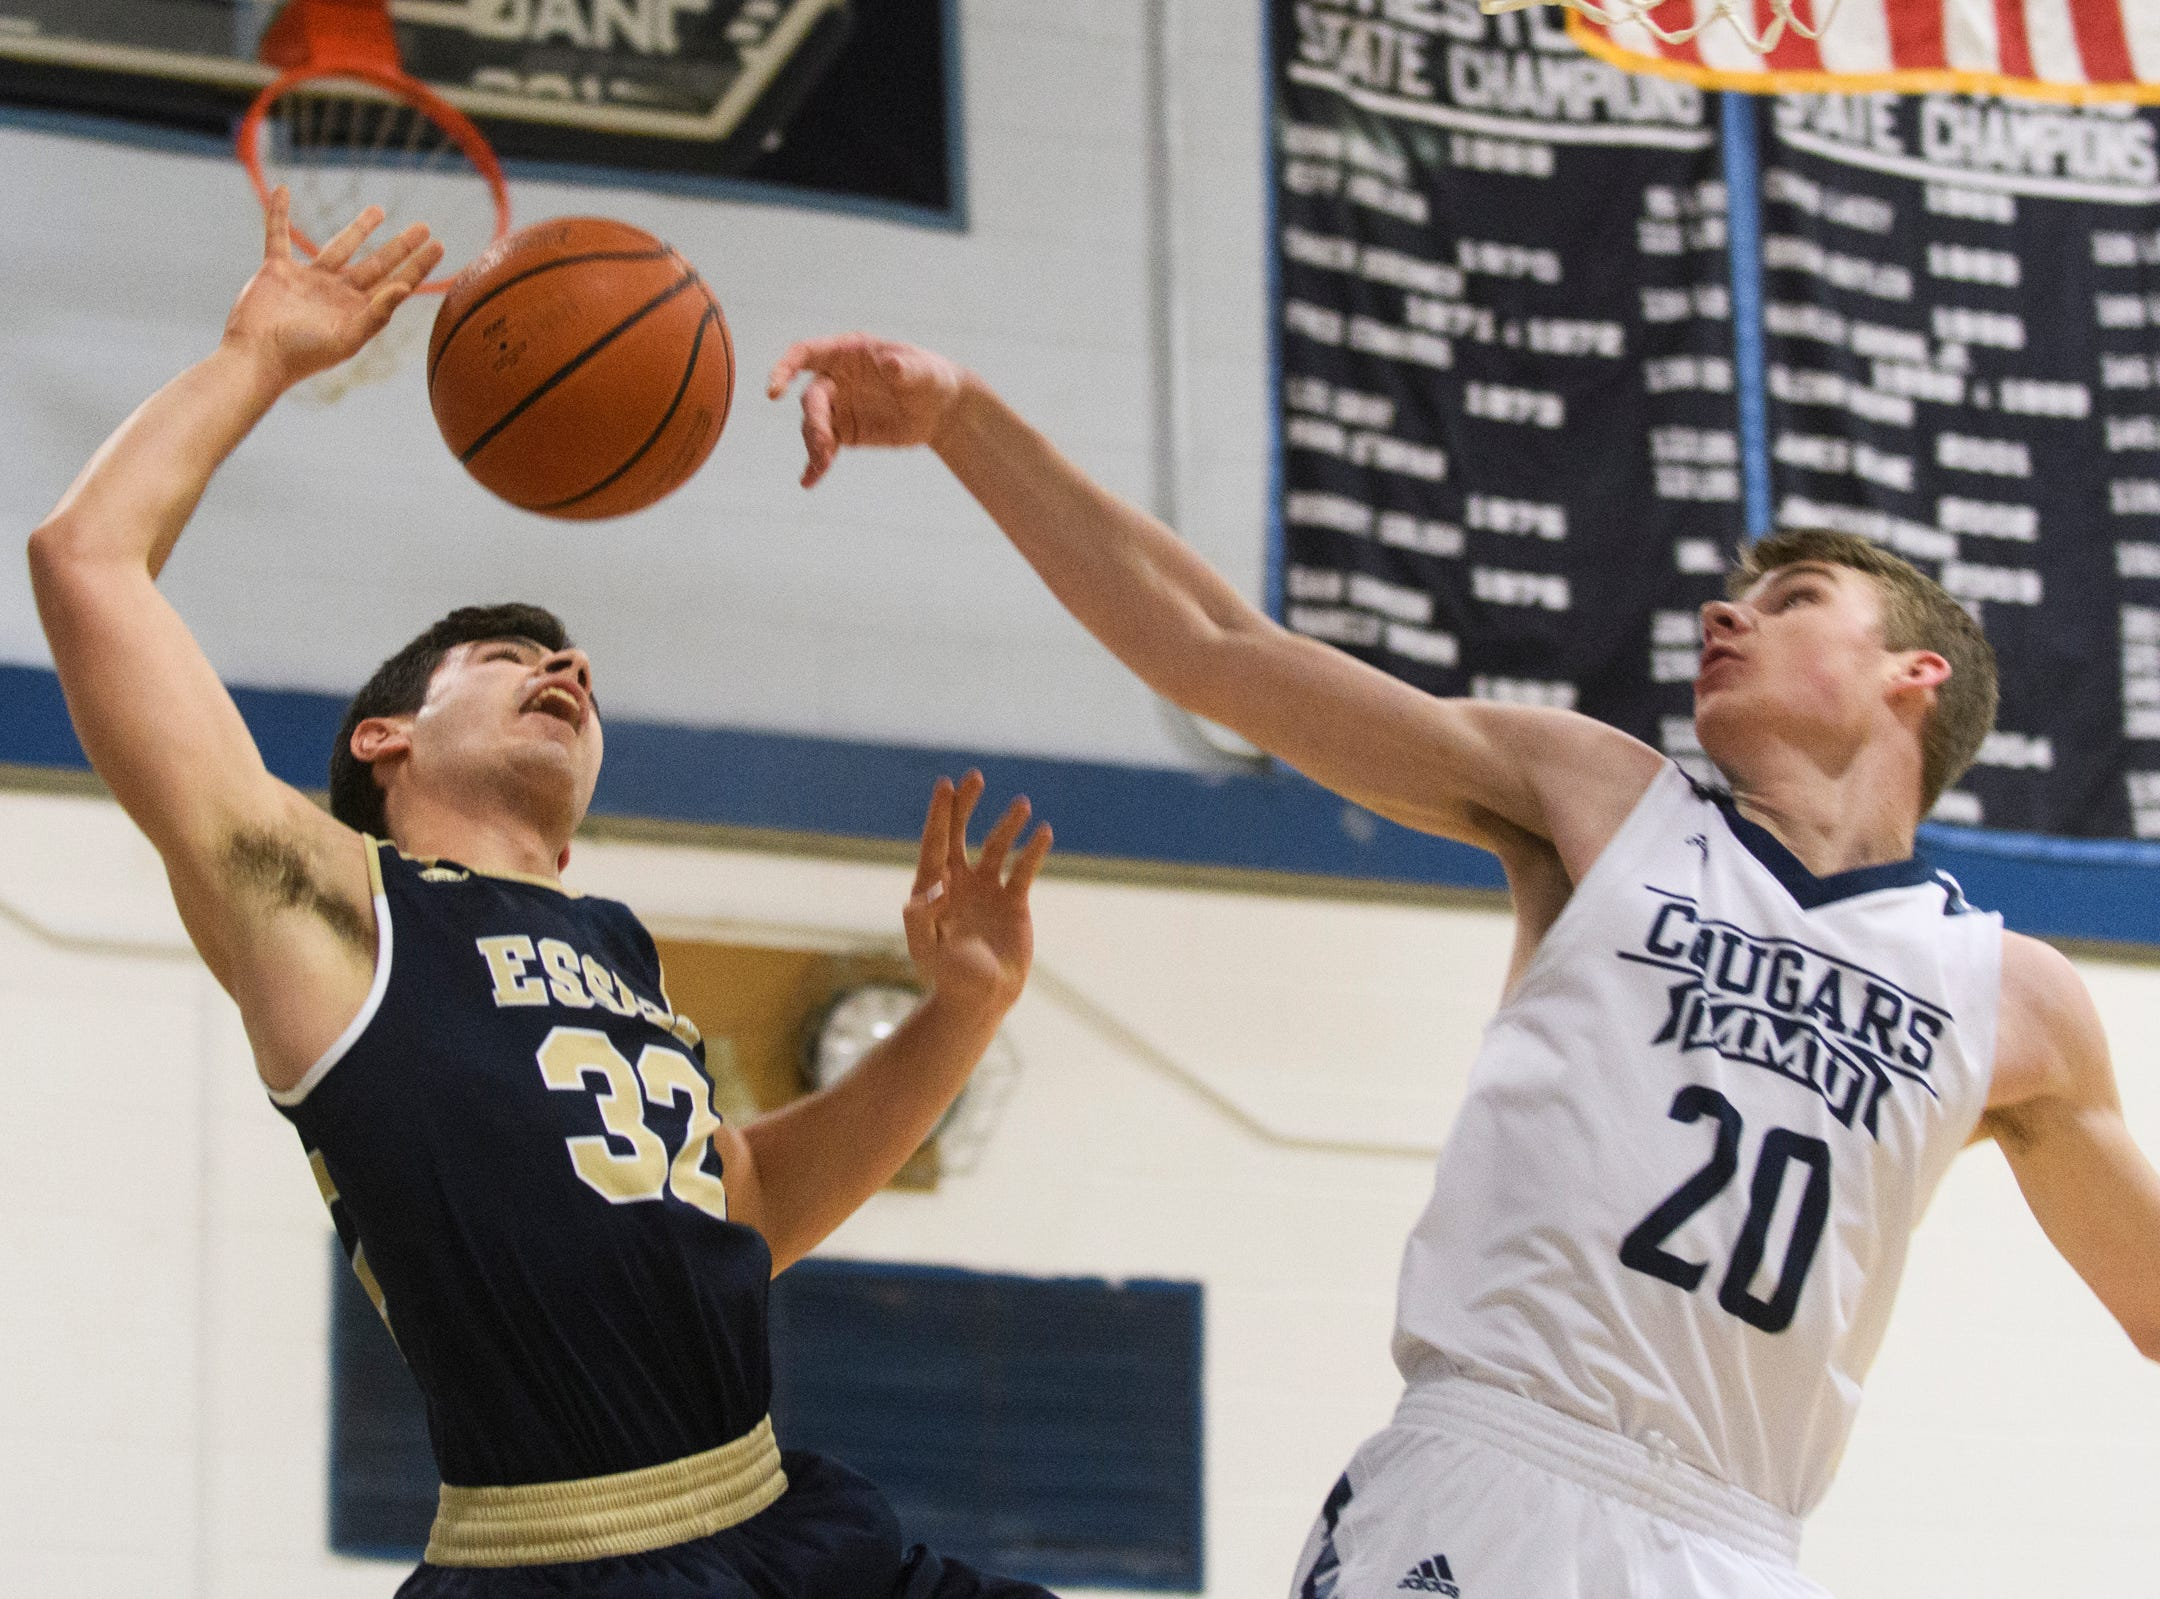 MMU's Connor Philbrick (20) blocks the shot by Essex's Adin Peco (32) during the boys basketball game between the Essex Hornets and the Mount Mansfield Cougars at MMU High School on Wednesday night February 13, 2019 in Jericho, Vermont.